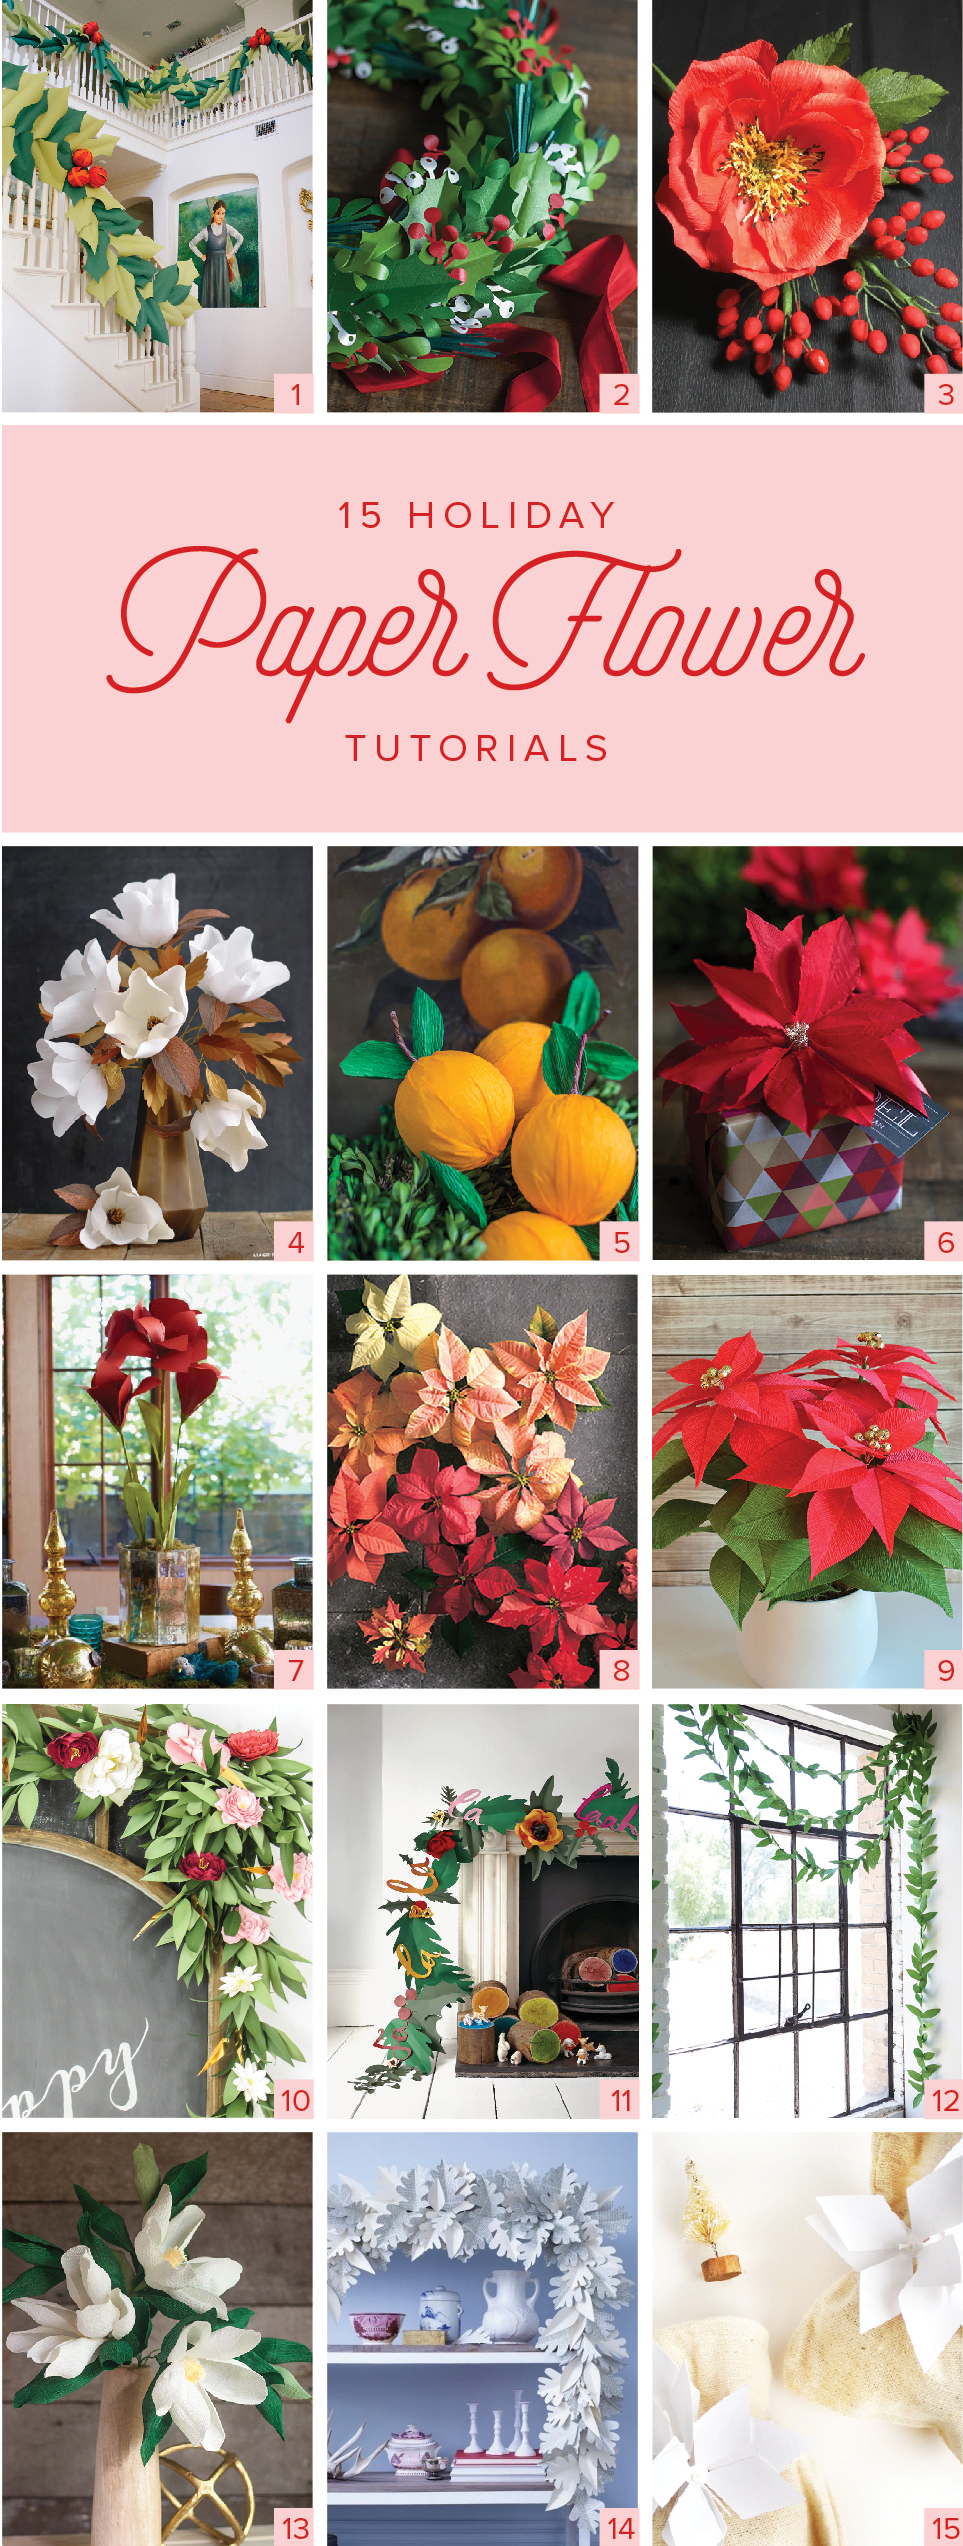 15 Holiday Paper Flower Tutorials The House That Lars Built